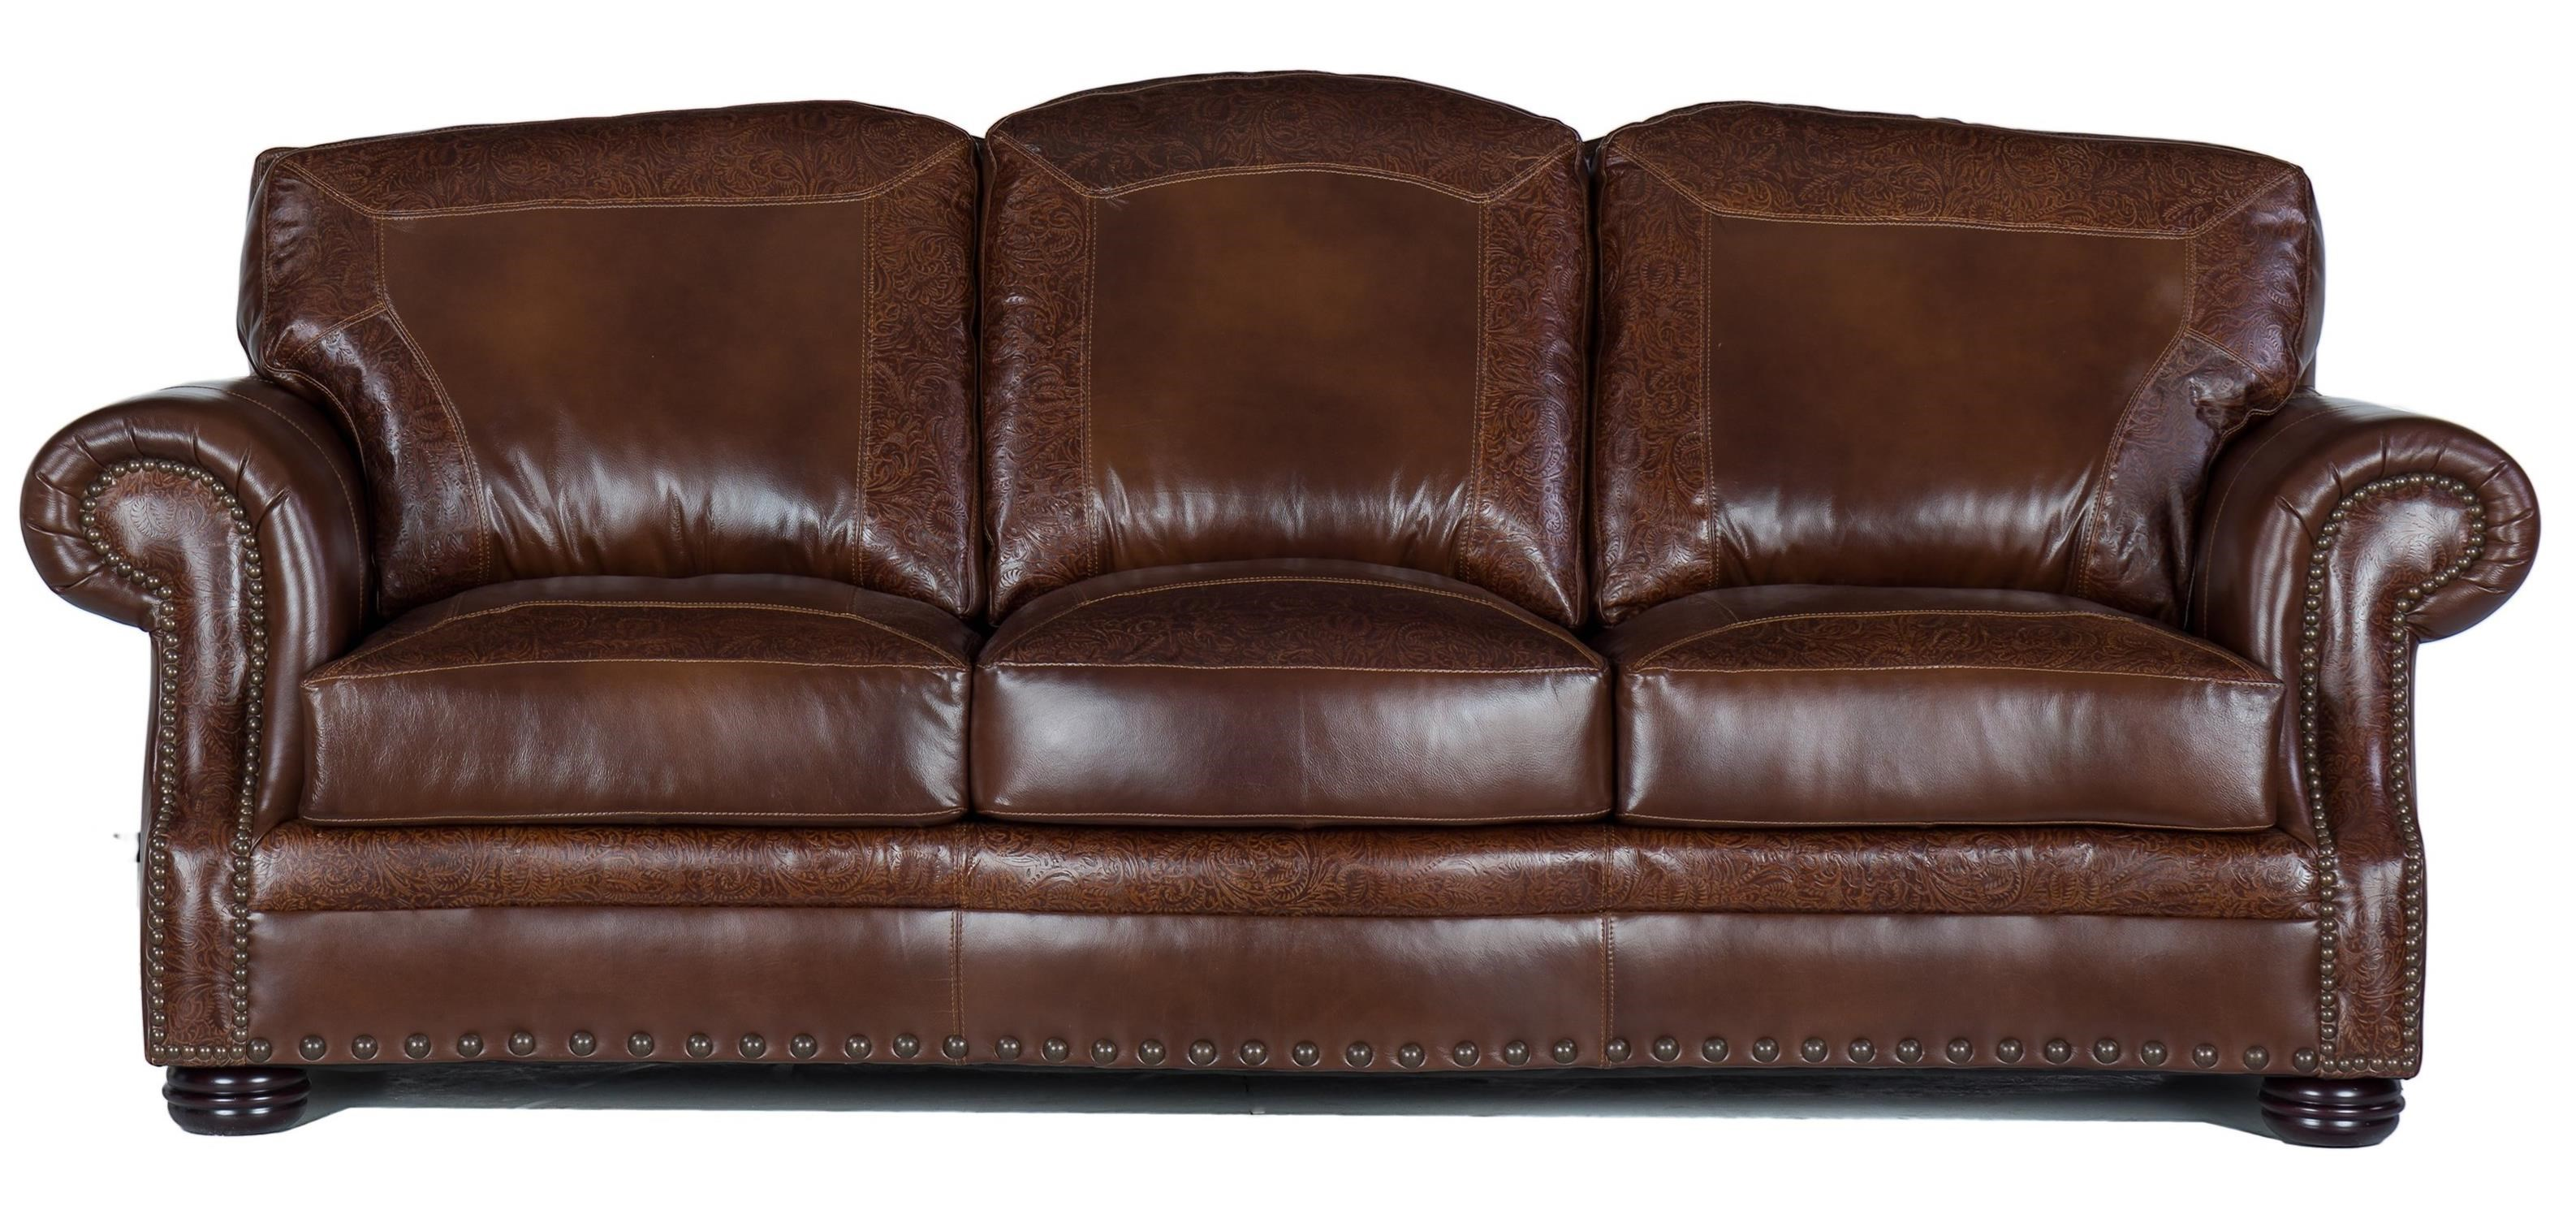 9750 Sofa by USA Premium Leather at Dream Home Interiors